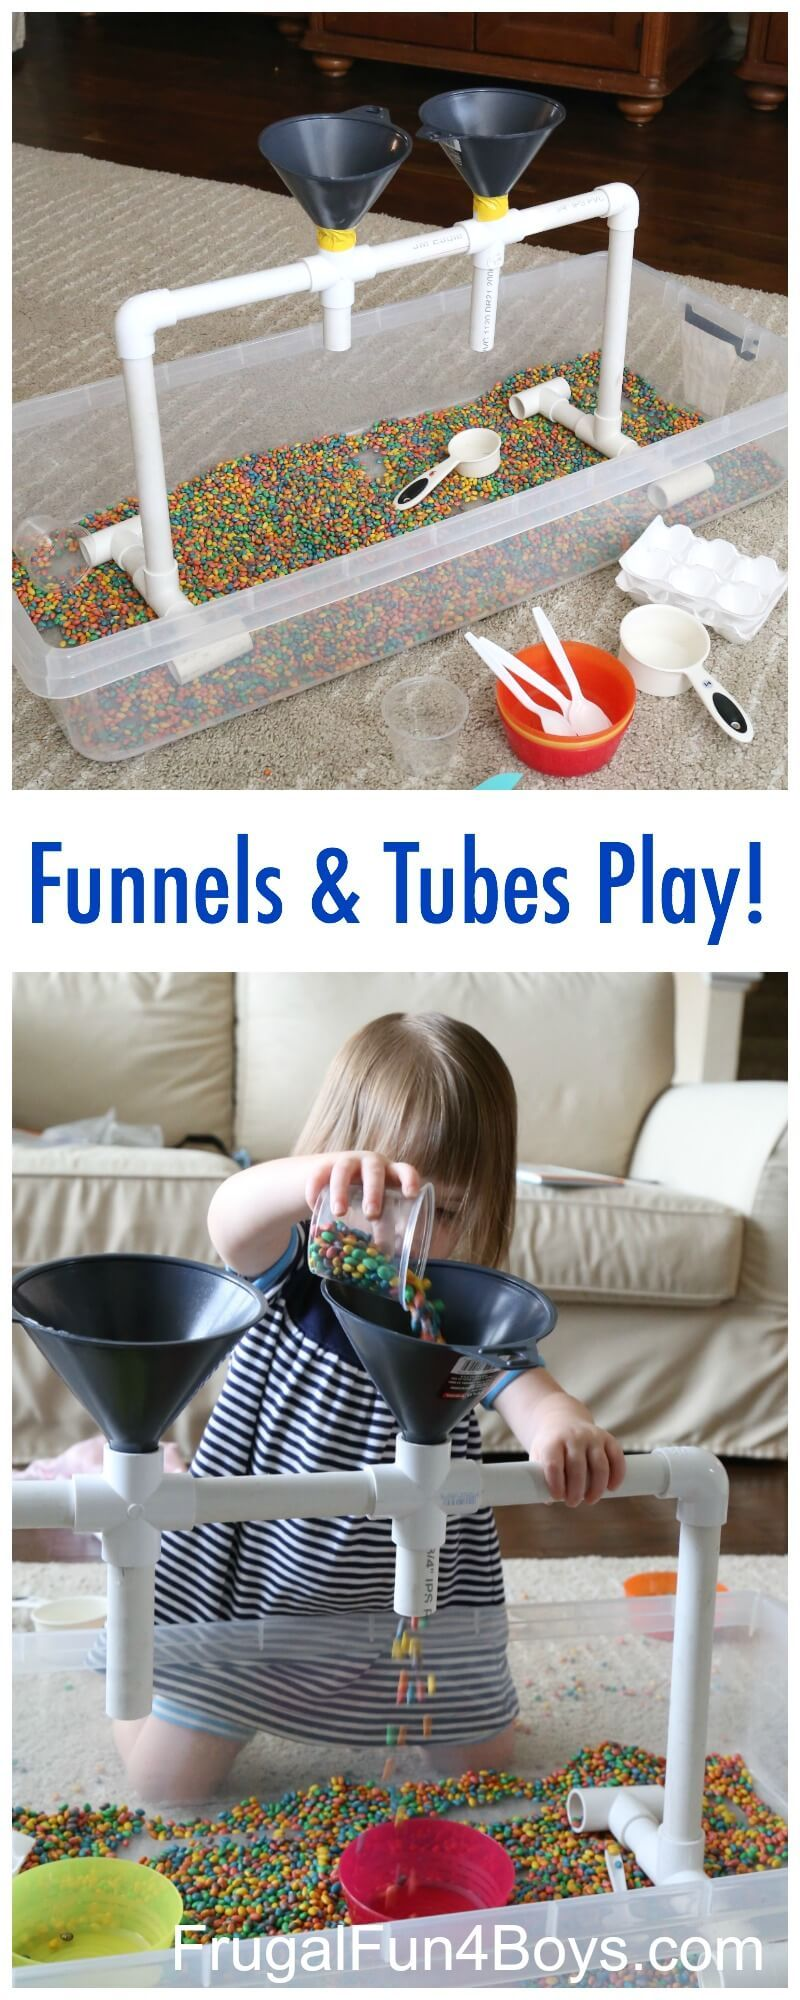 Fun And Easy DIY Pipe Projects For Kids To Do This Summer Diy - Best diy pipe project ideas for kids